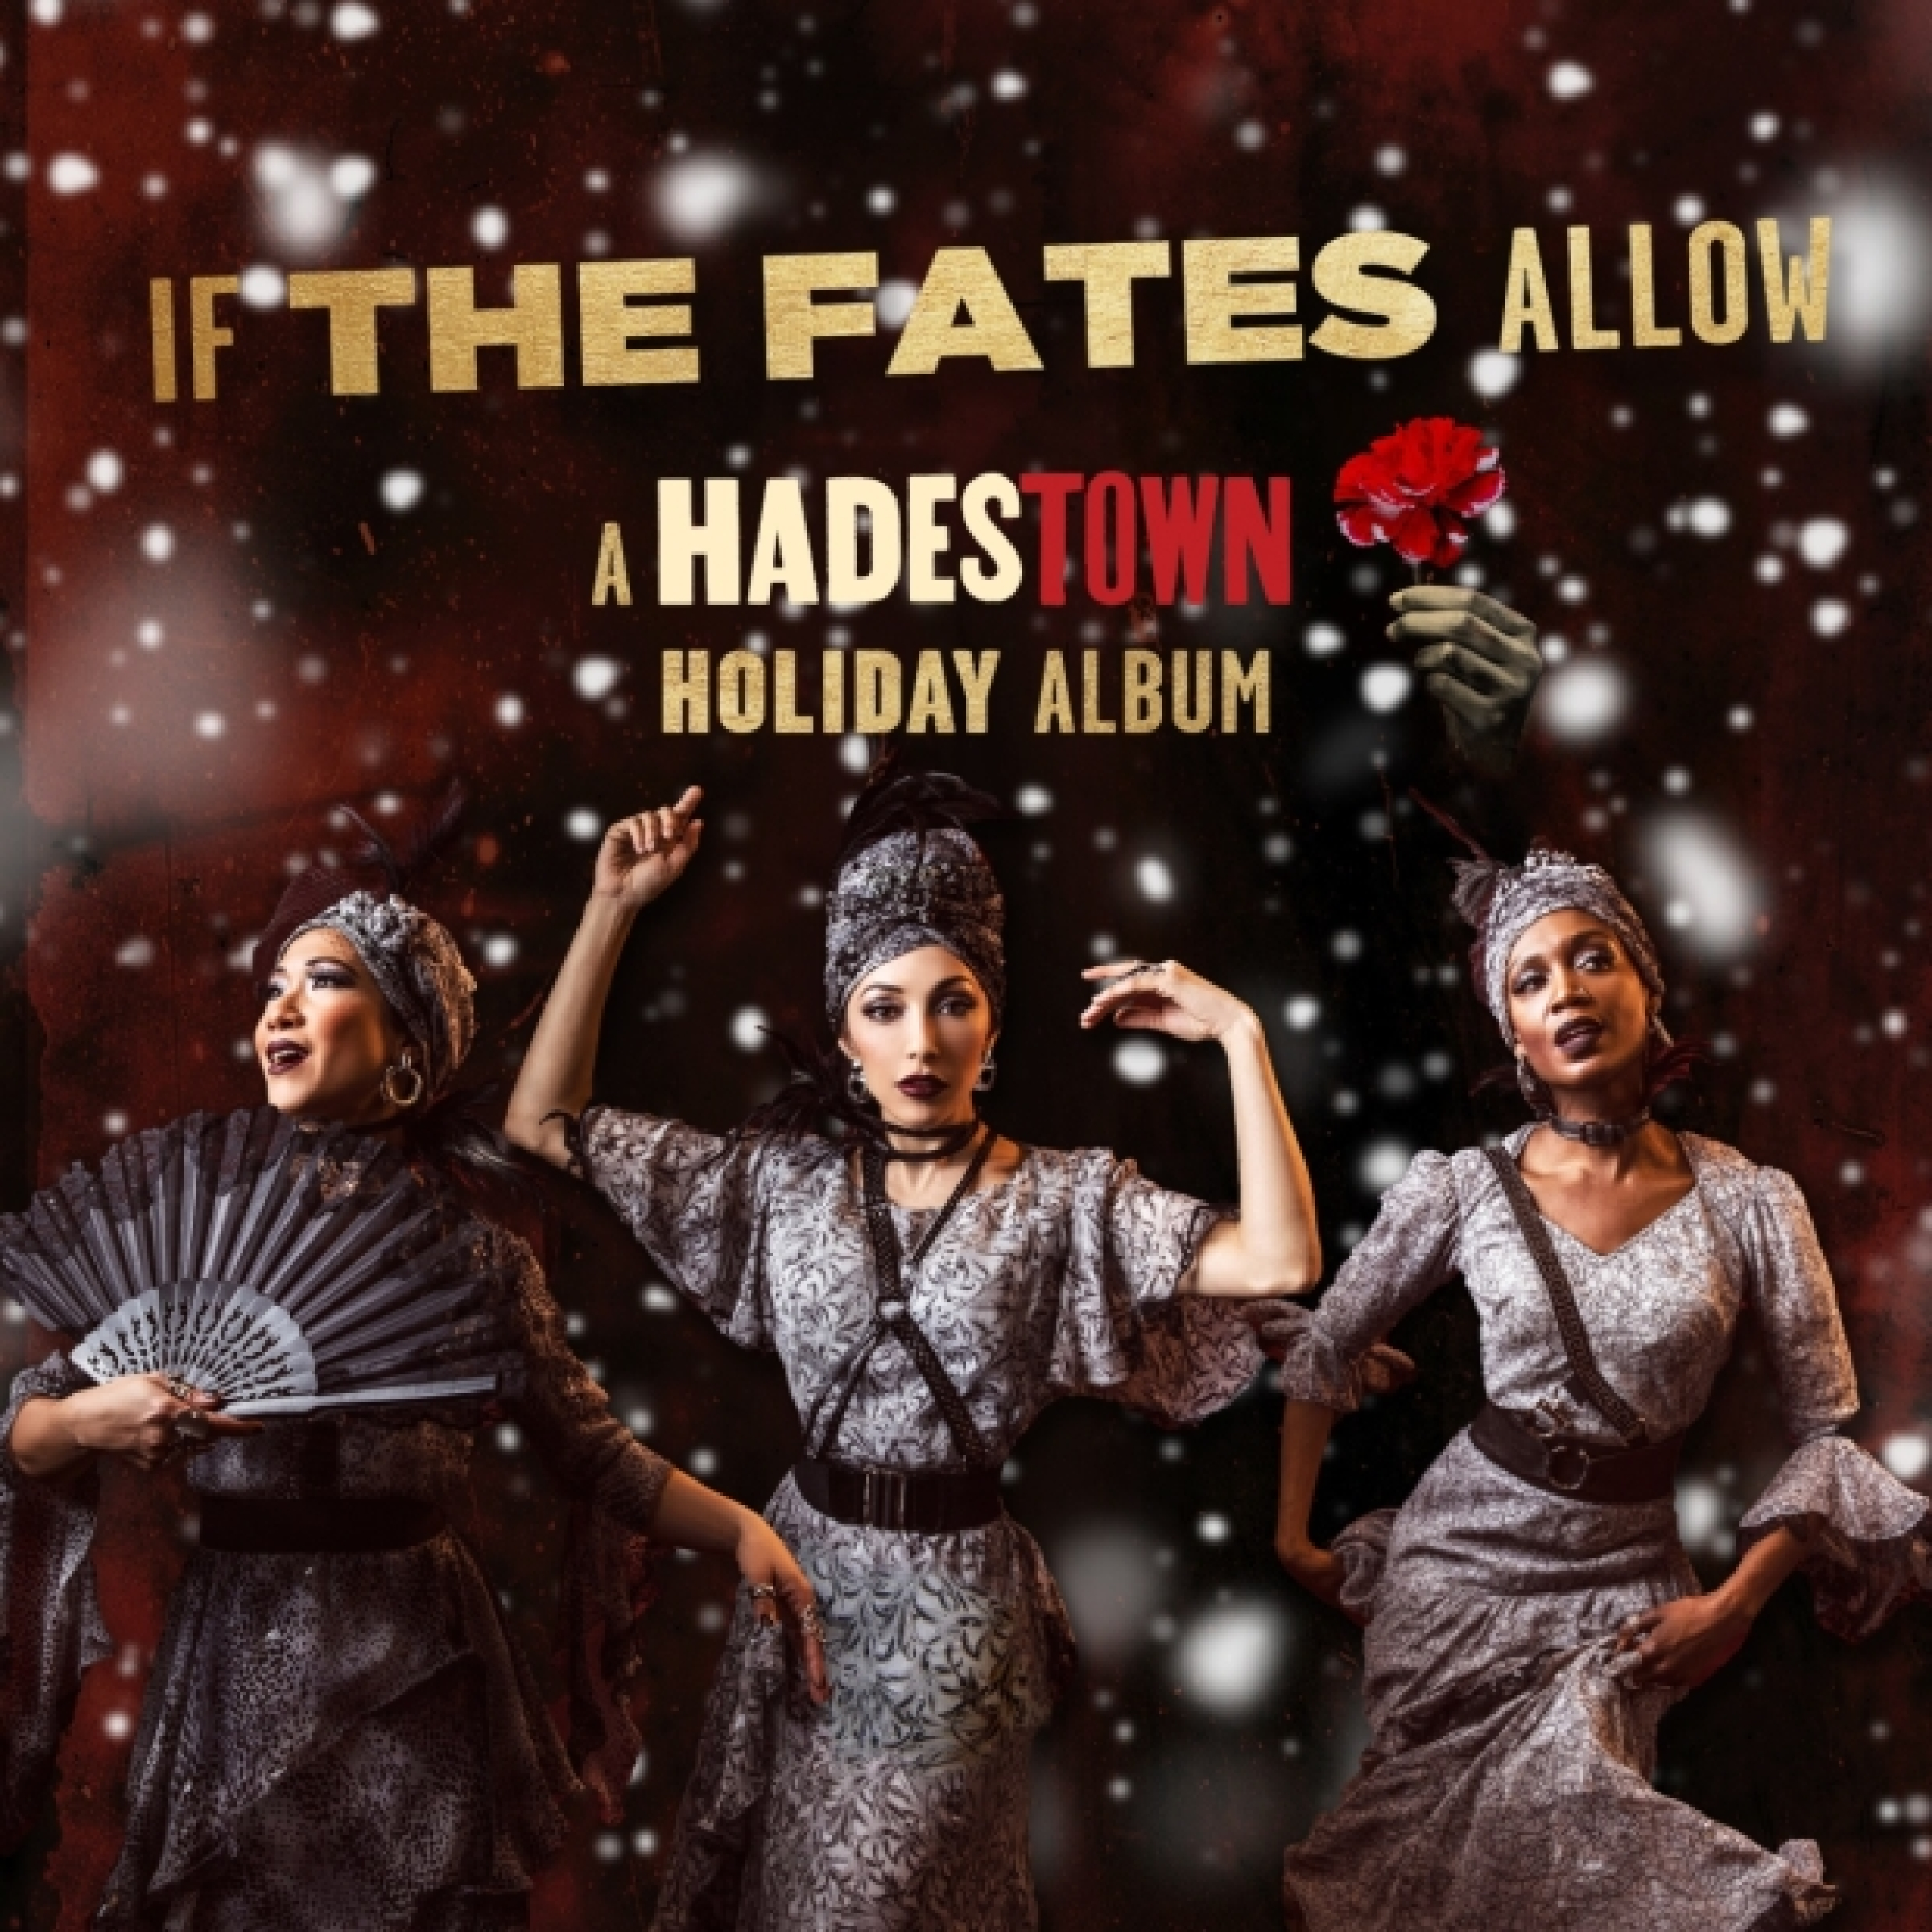 Hadestown Holiday Album If the Fates Allow